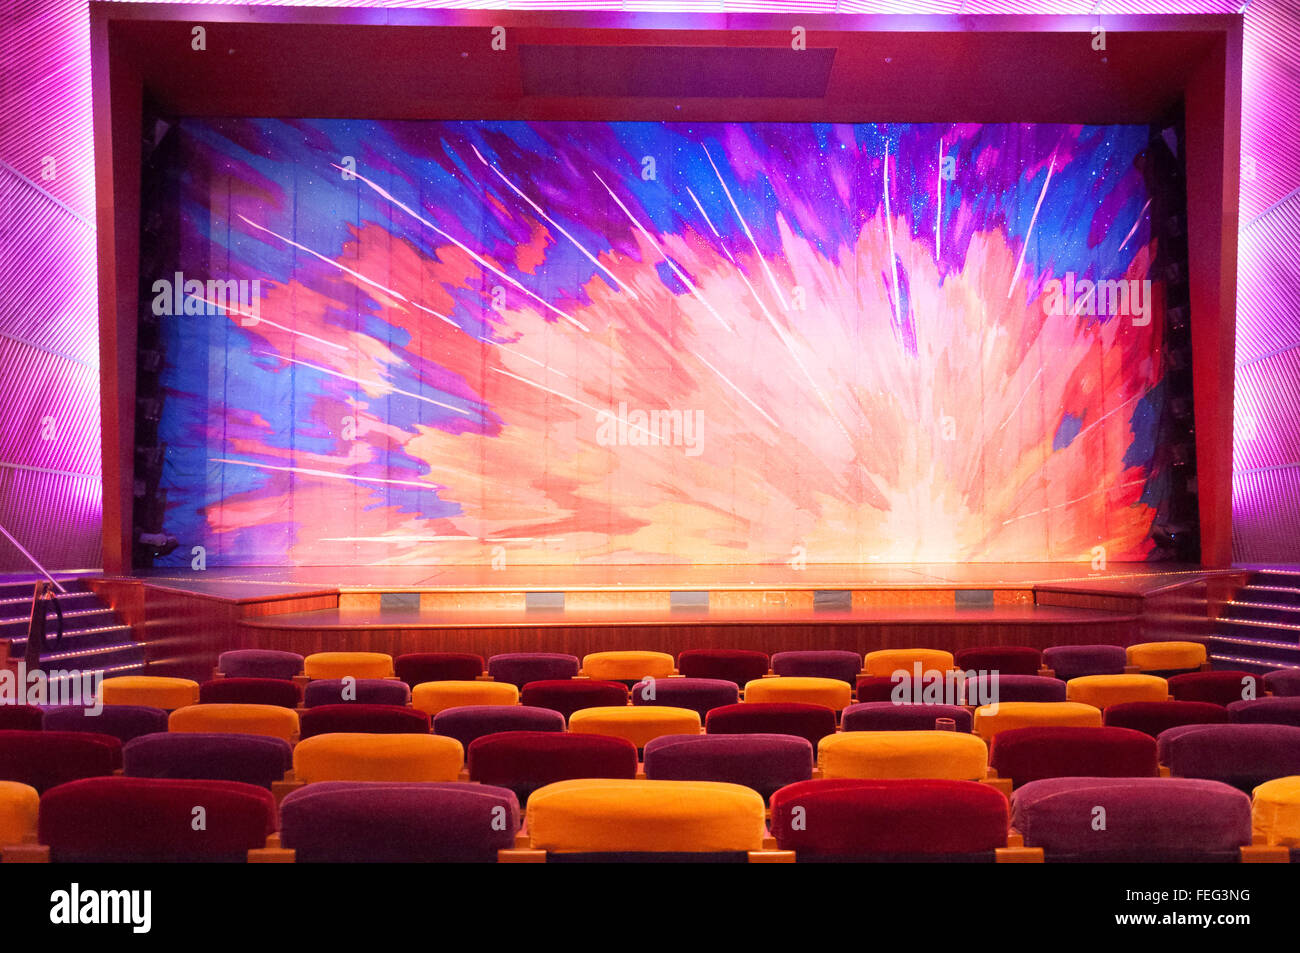 Stage and seats in The Pacifica Theatre, Royal Caribbean's Brilliance of the Seas cruise ship, North Sea, Europe - Stock Image